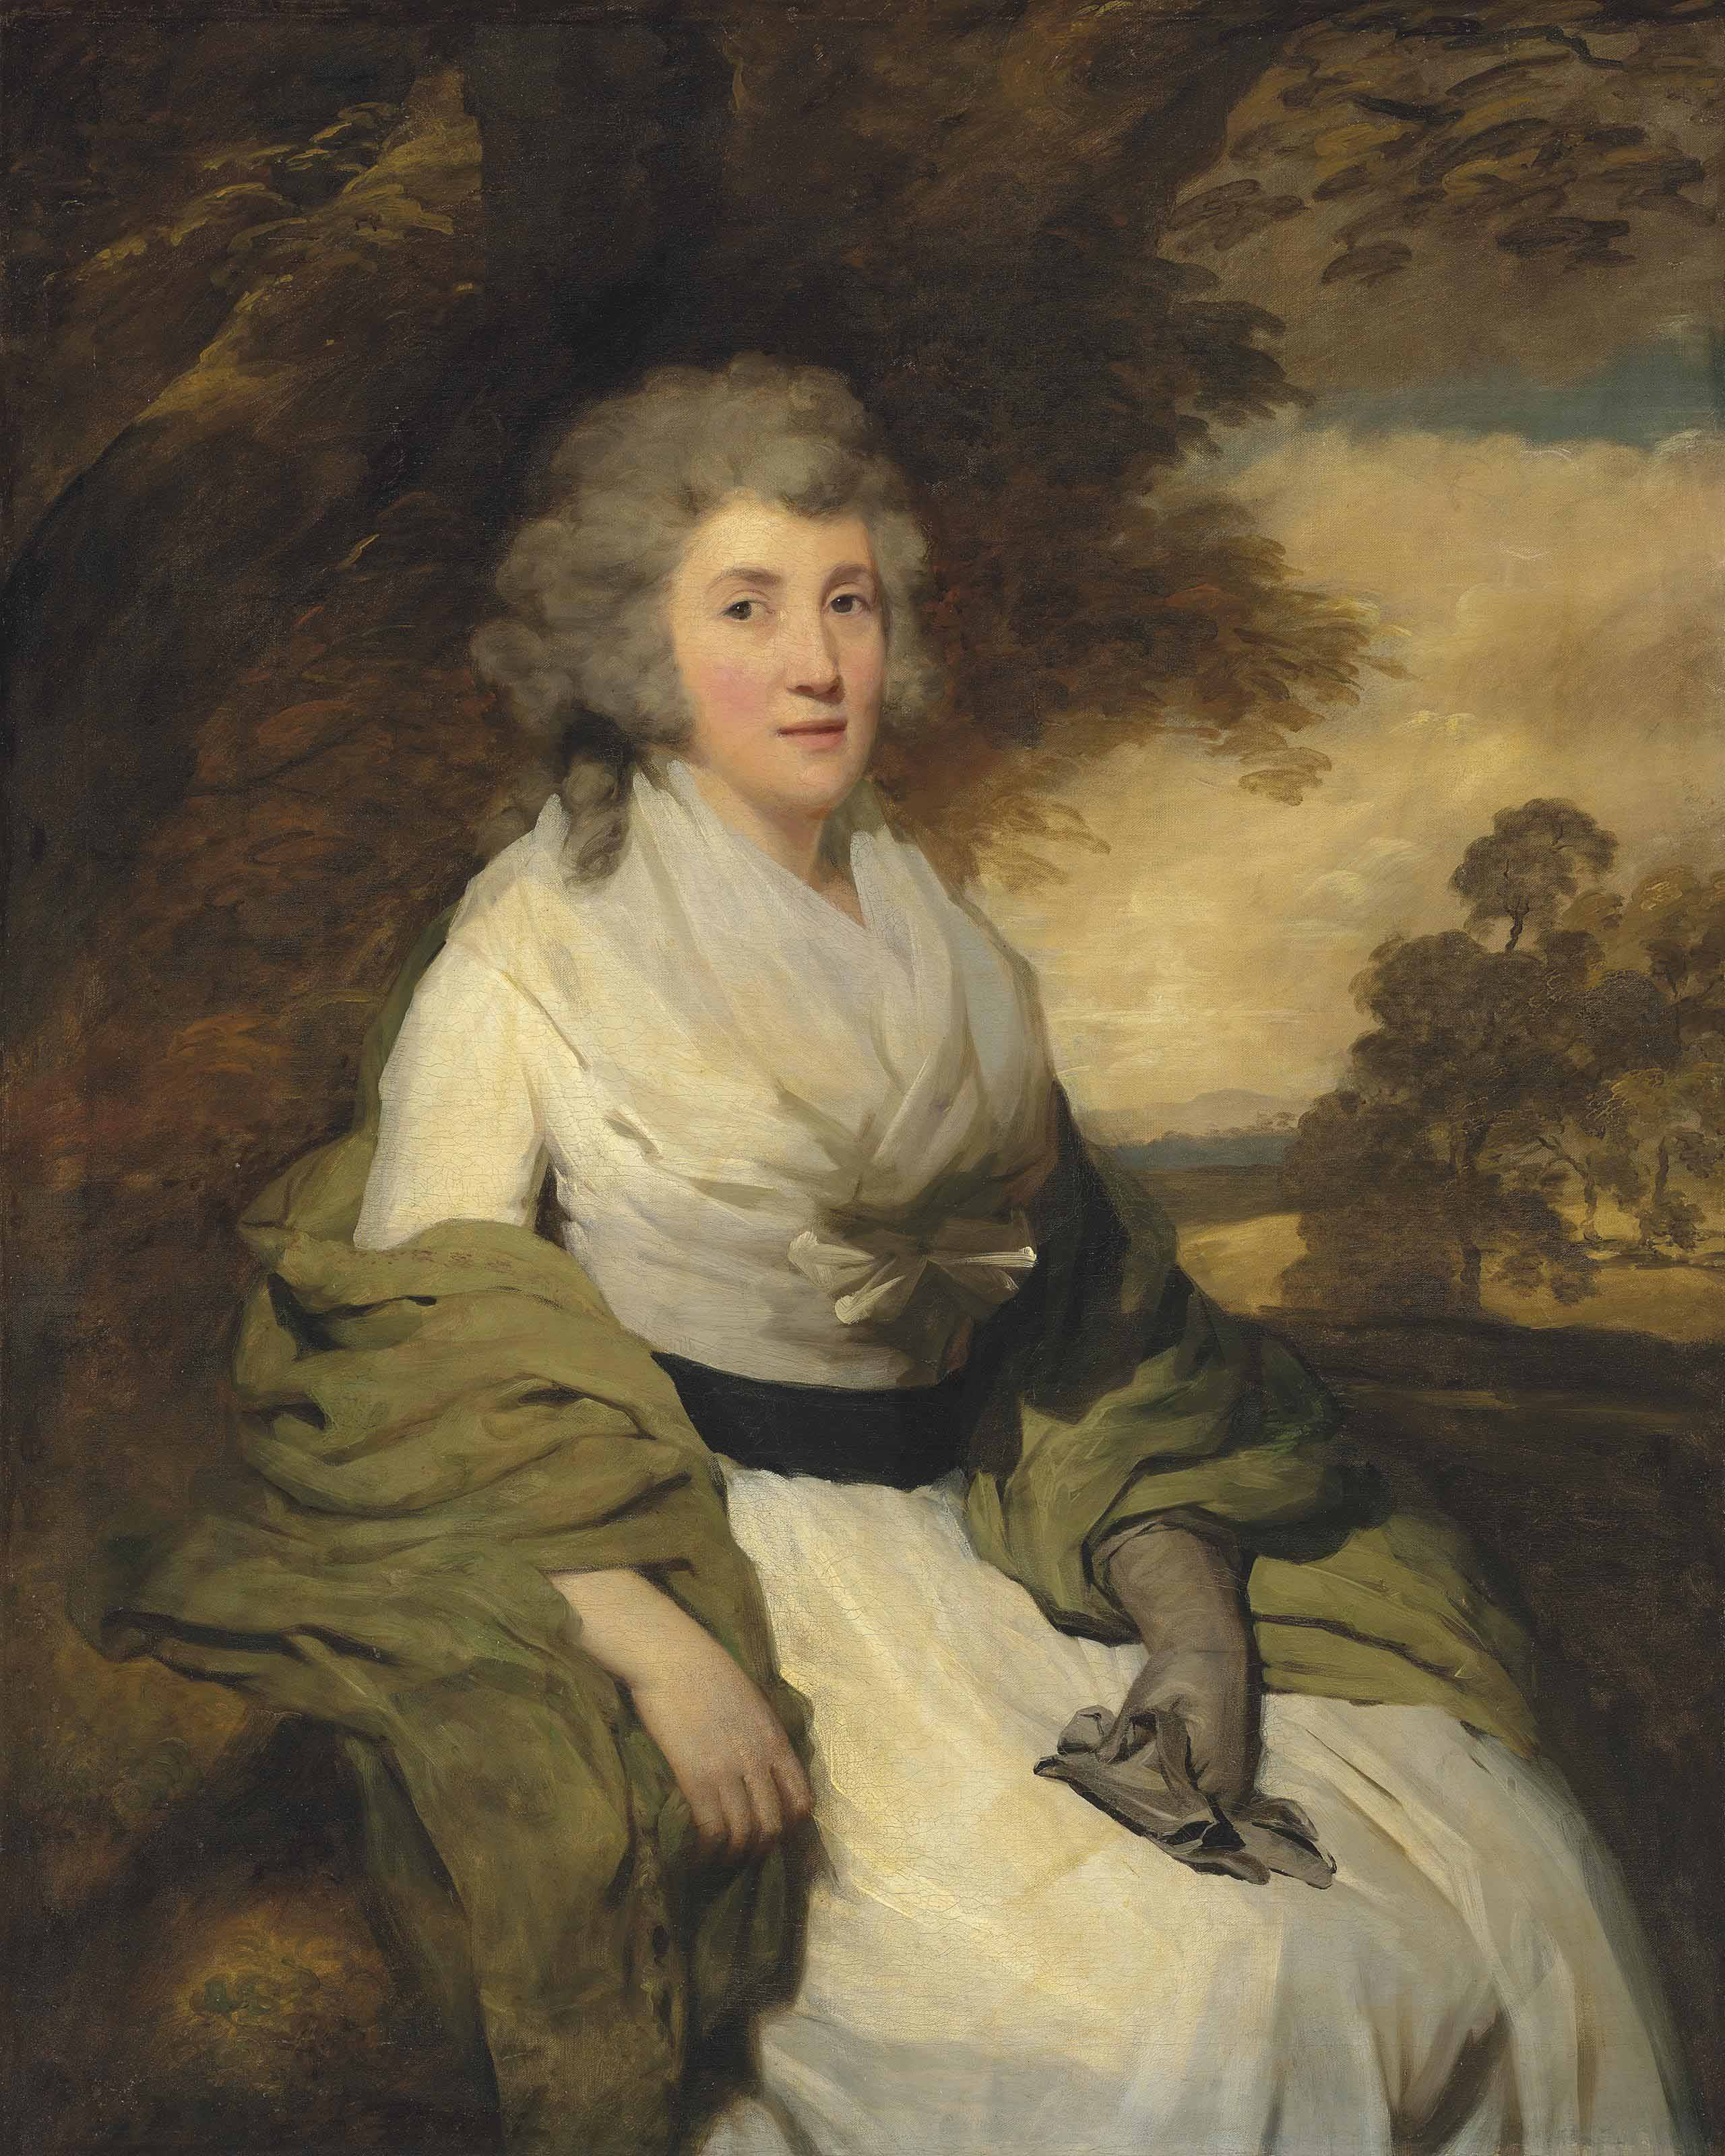 Portrait of Henrietta, Mrs. John Parish (1745-1810), three-quarter-length, seated in a landscape, wearing a white dress with a green shawl and gloves